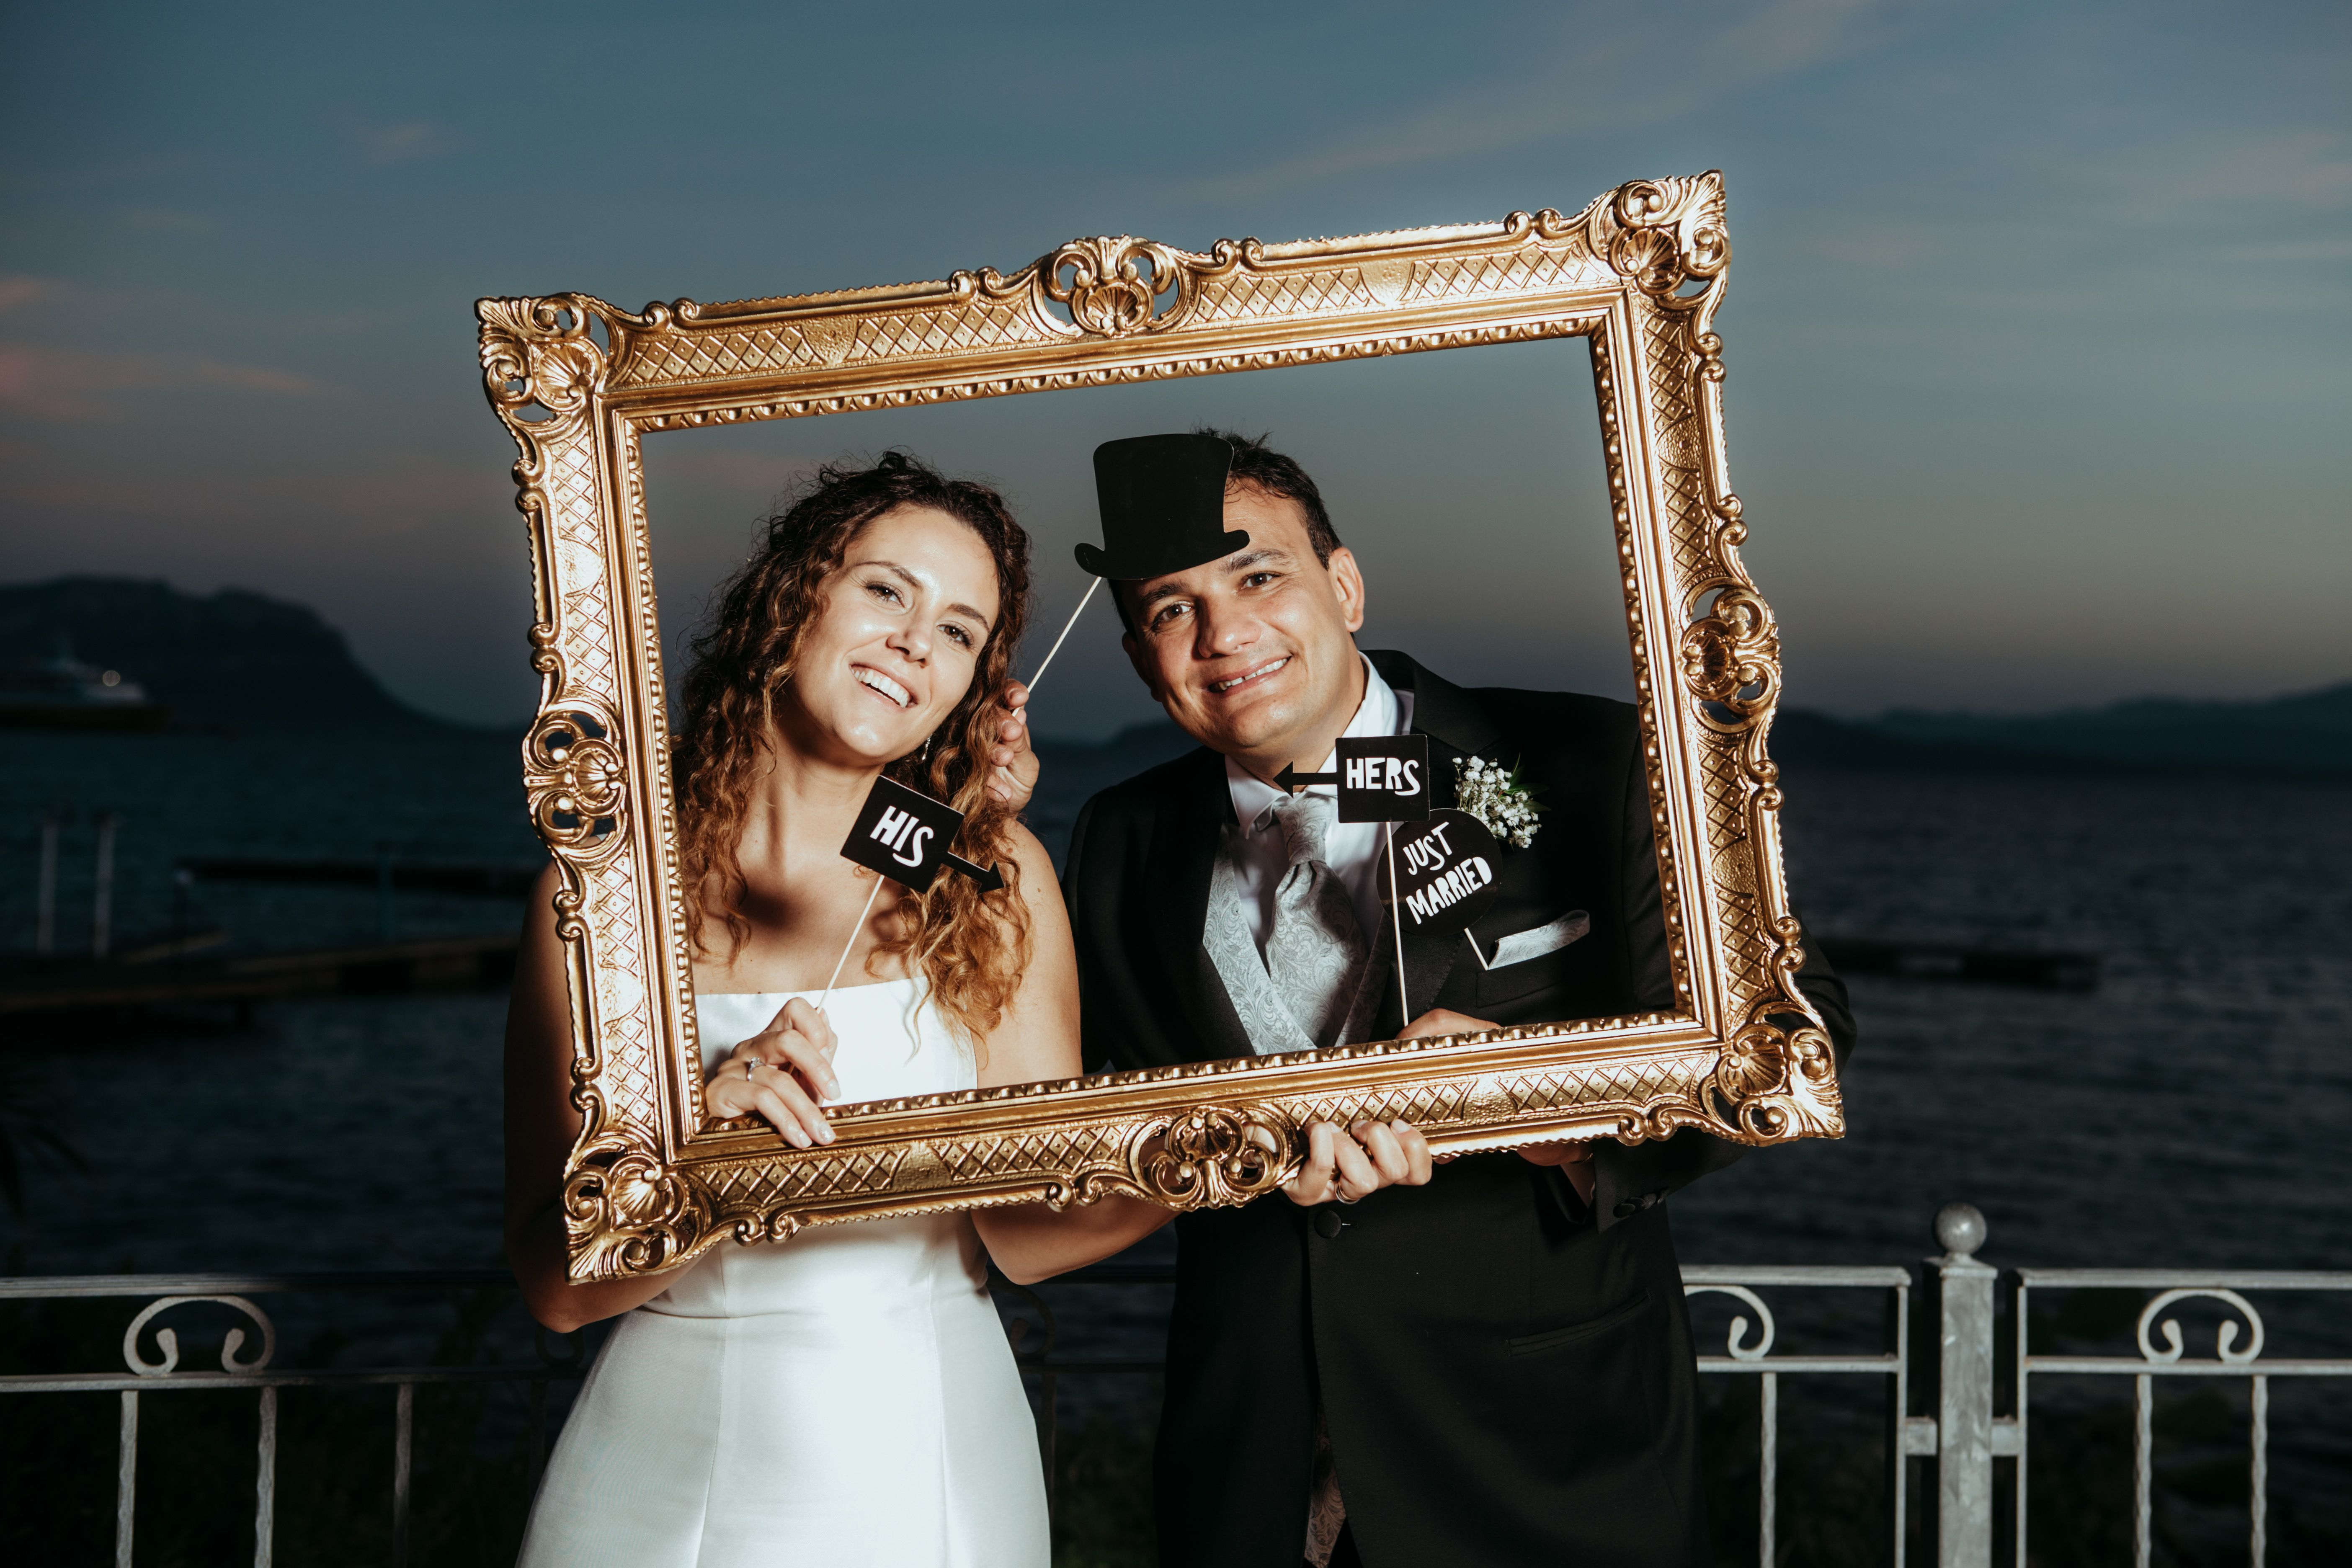 A Wedding Photo Booth Is Always Nice Idea To Collect Memories Of Your Day